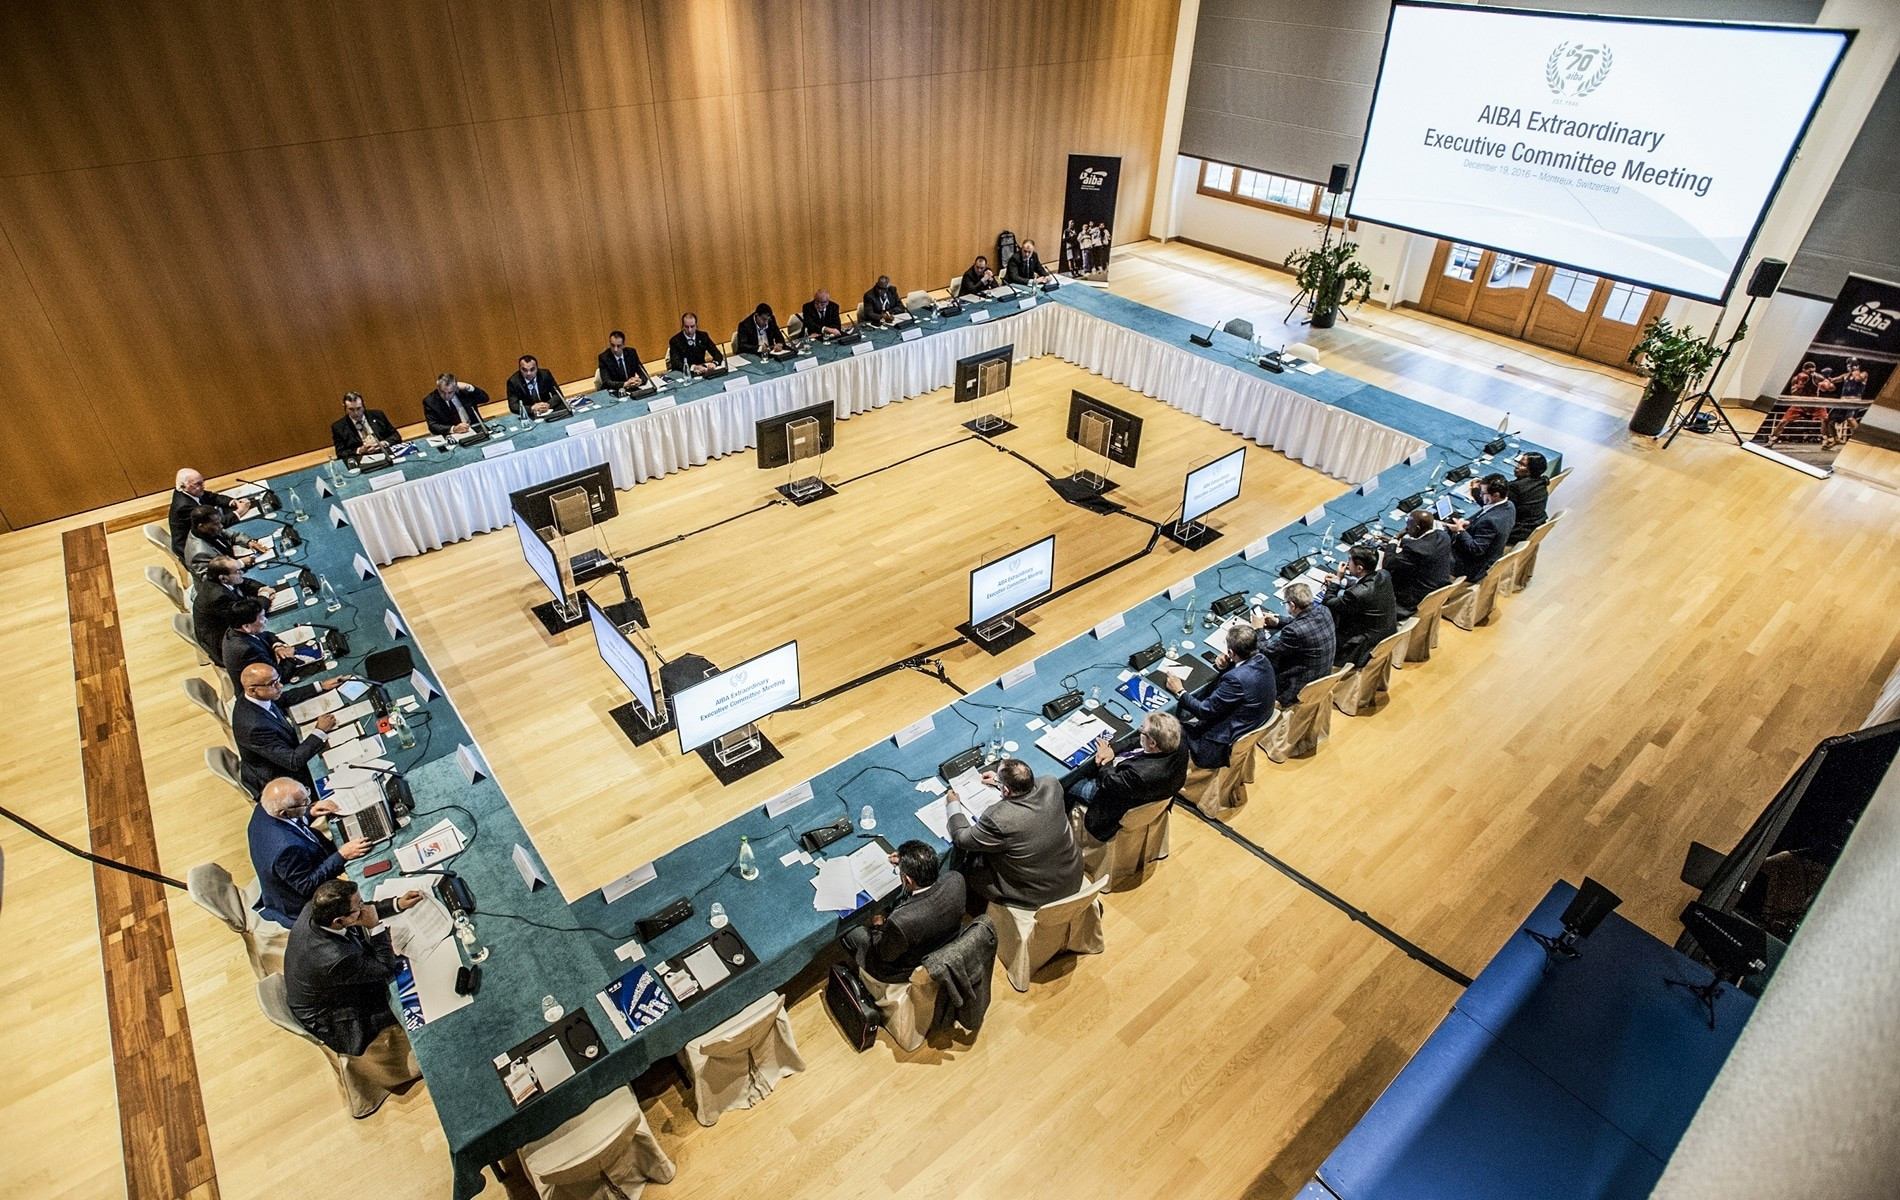 AIBA is set to hold another extraordinary Executive Committee meeting later this month ©AIBA